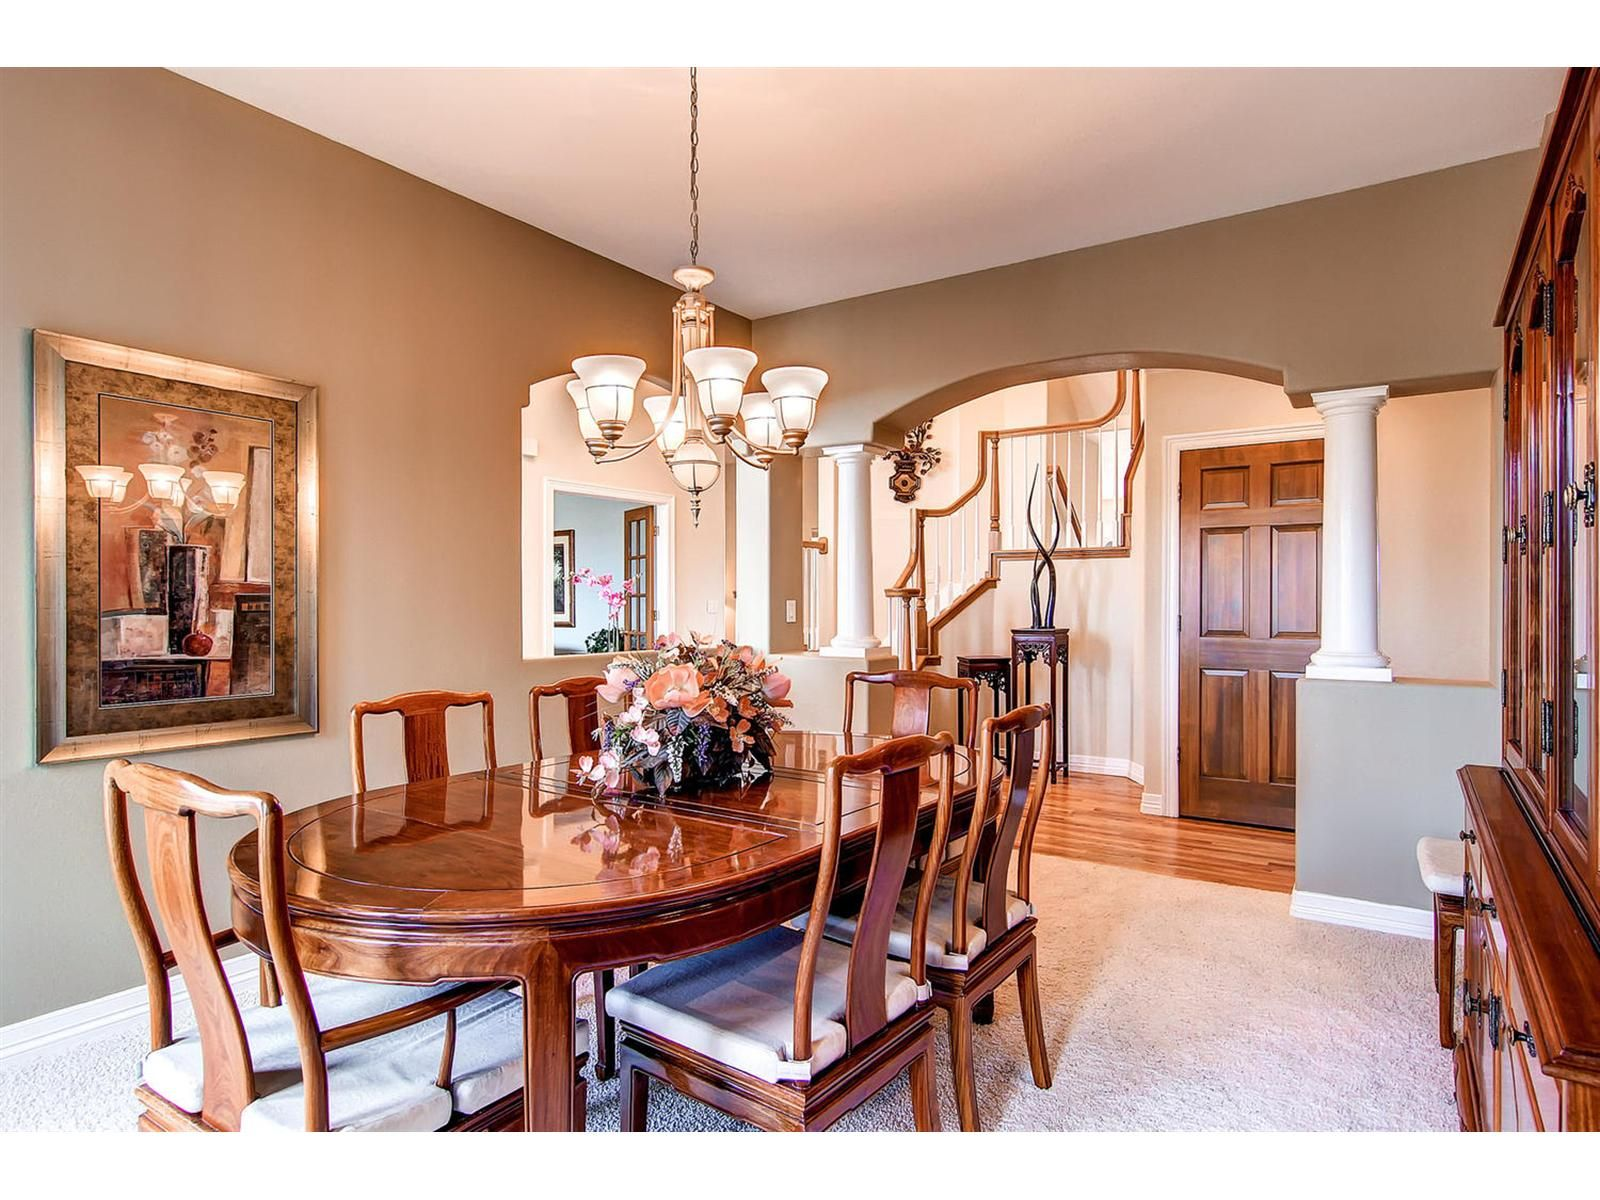 The Formal Dining Room Has A Grand Entrance And Direct Access To Front Door